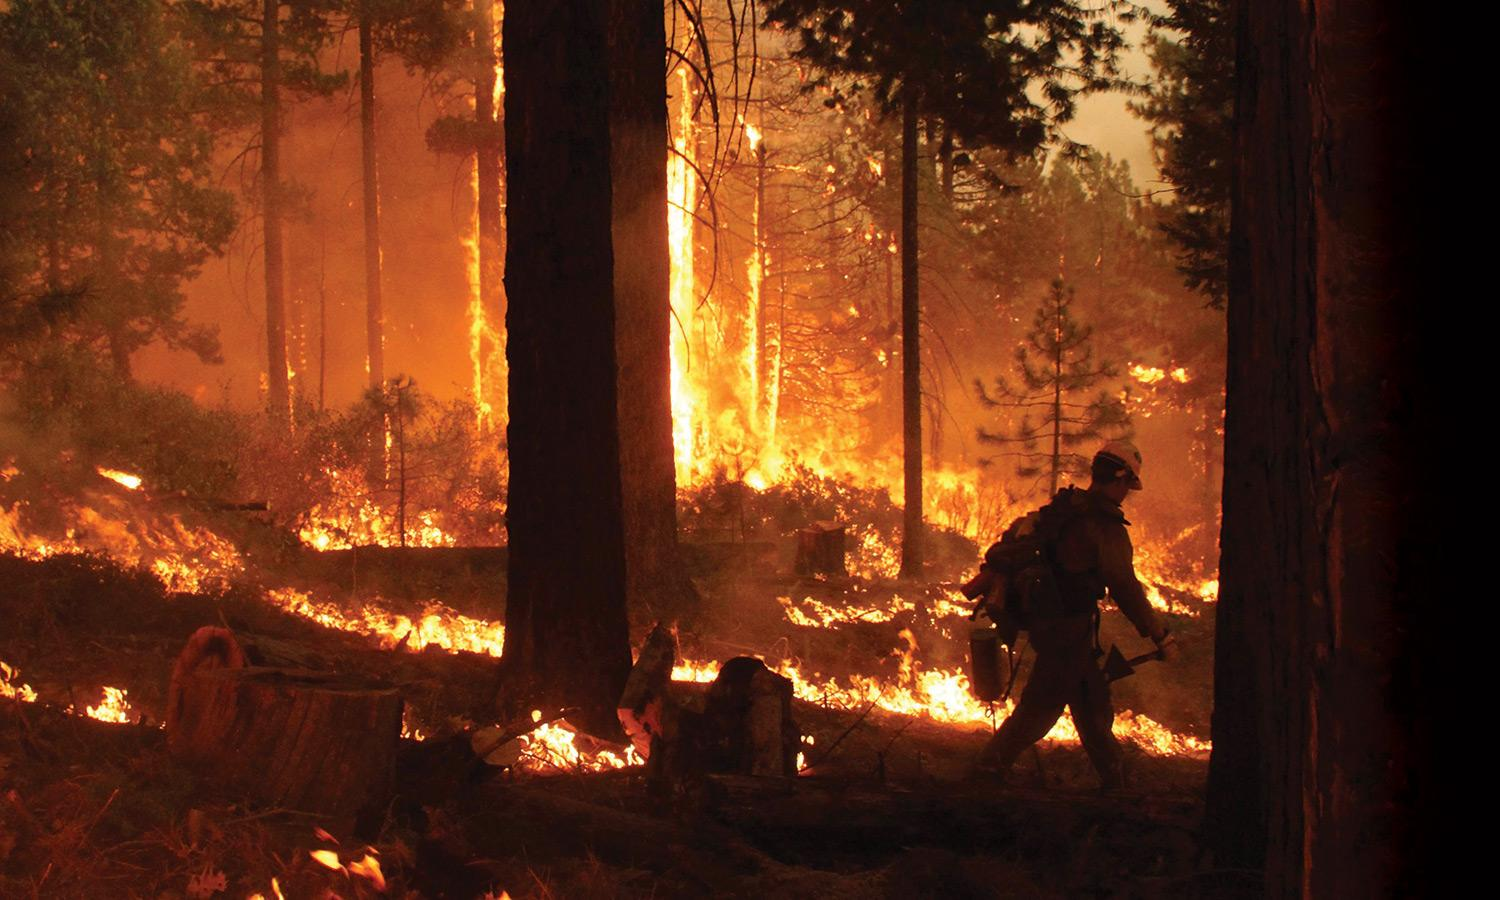 Firefighter walking, surrounded by blazing wildfire